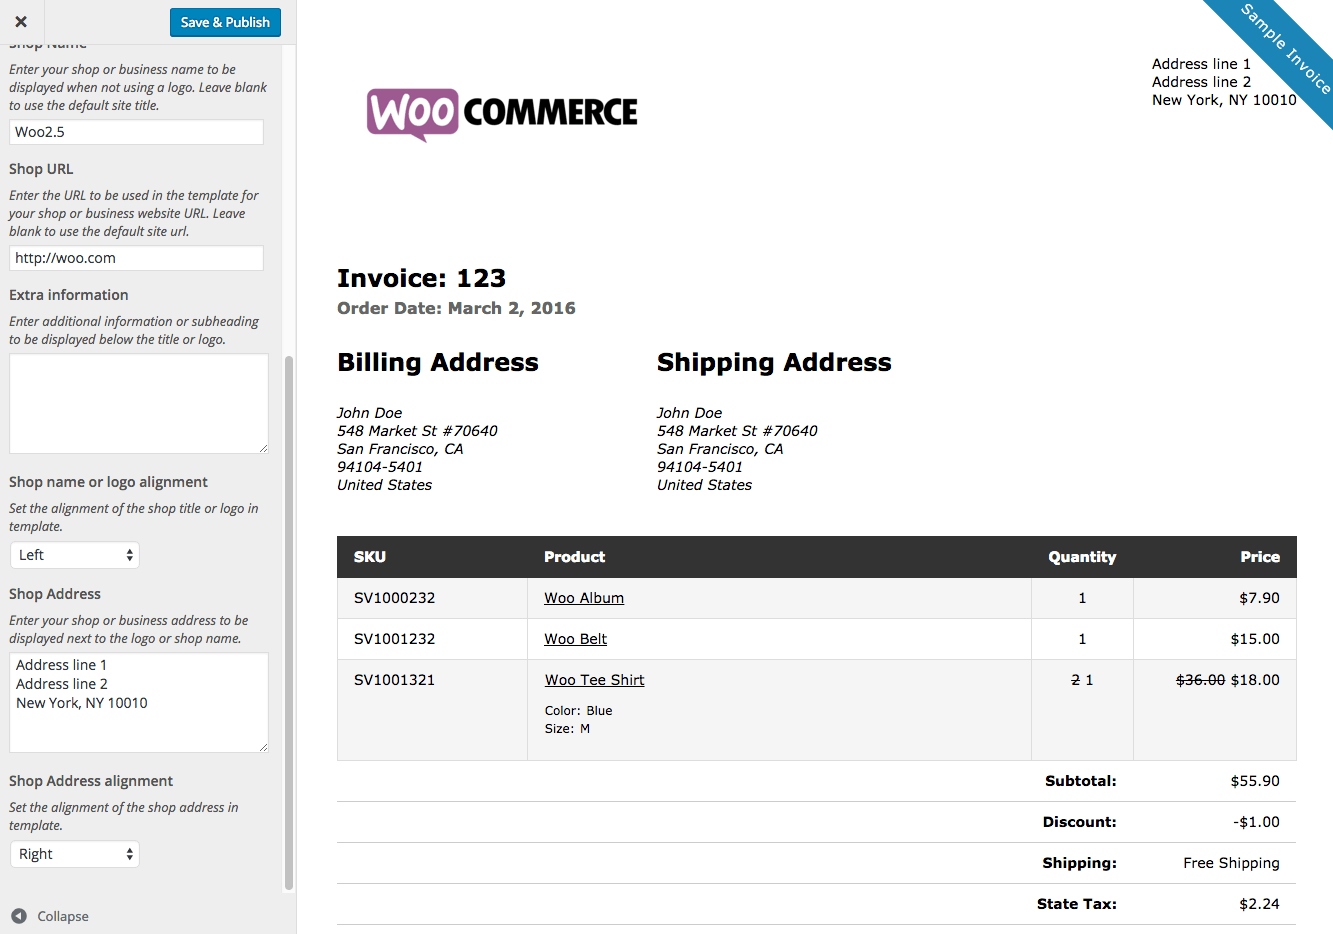 Helpingtohealus  Personable Woocommerce Print Invoices Amp Packing Lists  Woocommerce Docs With Lovable Woocommerce Print Invoices  Packing Lists Customizer With Lovely Definition Of Cash Receipts Also Receipt Template Word Free In Addition Sample Letter Of Receipt And Kindly Acknowledge The Receipt As Well As Till Receipts Additionally Receipt Format In Excel From Docswoocommercecom With Helpingtohealus  Lovable Woocommerce Print Invoices Amp Packing Lists  Woocommerce Docs With Lovely Woocommerce Print Invoices  Packing Lists Customizer And Personable Definition Of Cash Receipts Also Receipt Template Word Free In Addition Sample Letter Of Receipt From Docswoocommercecom